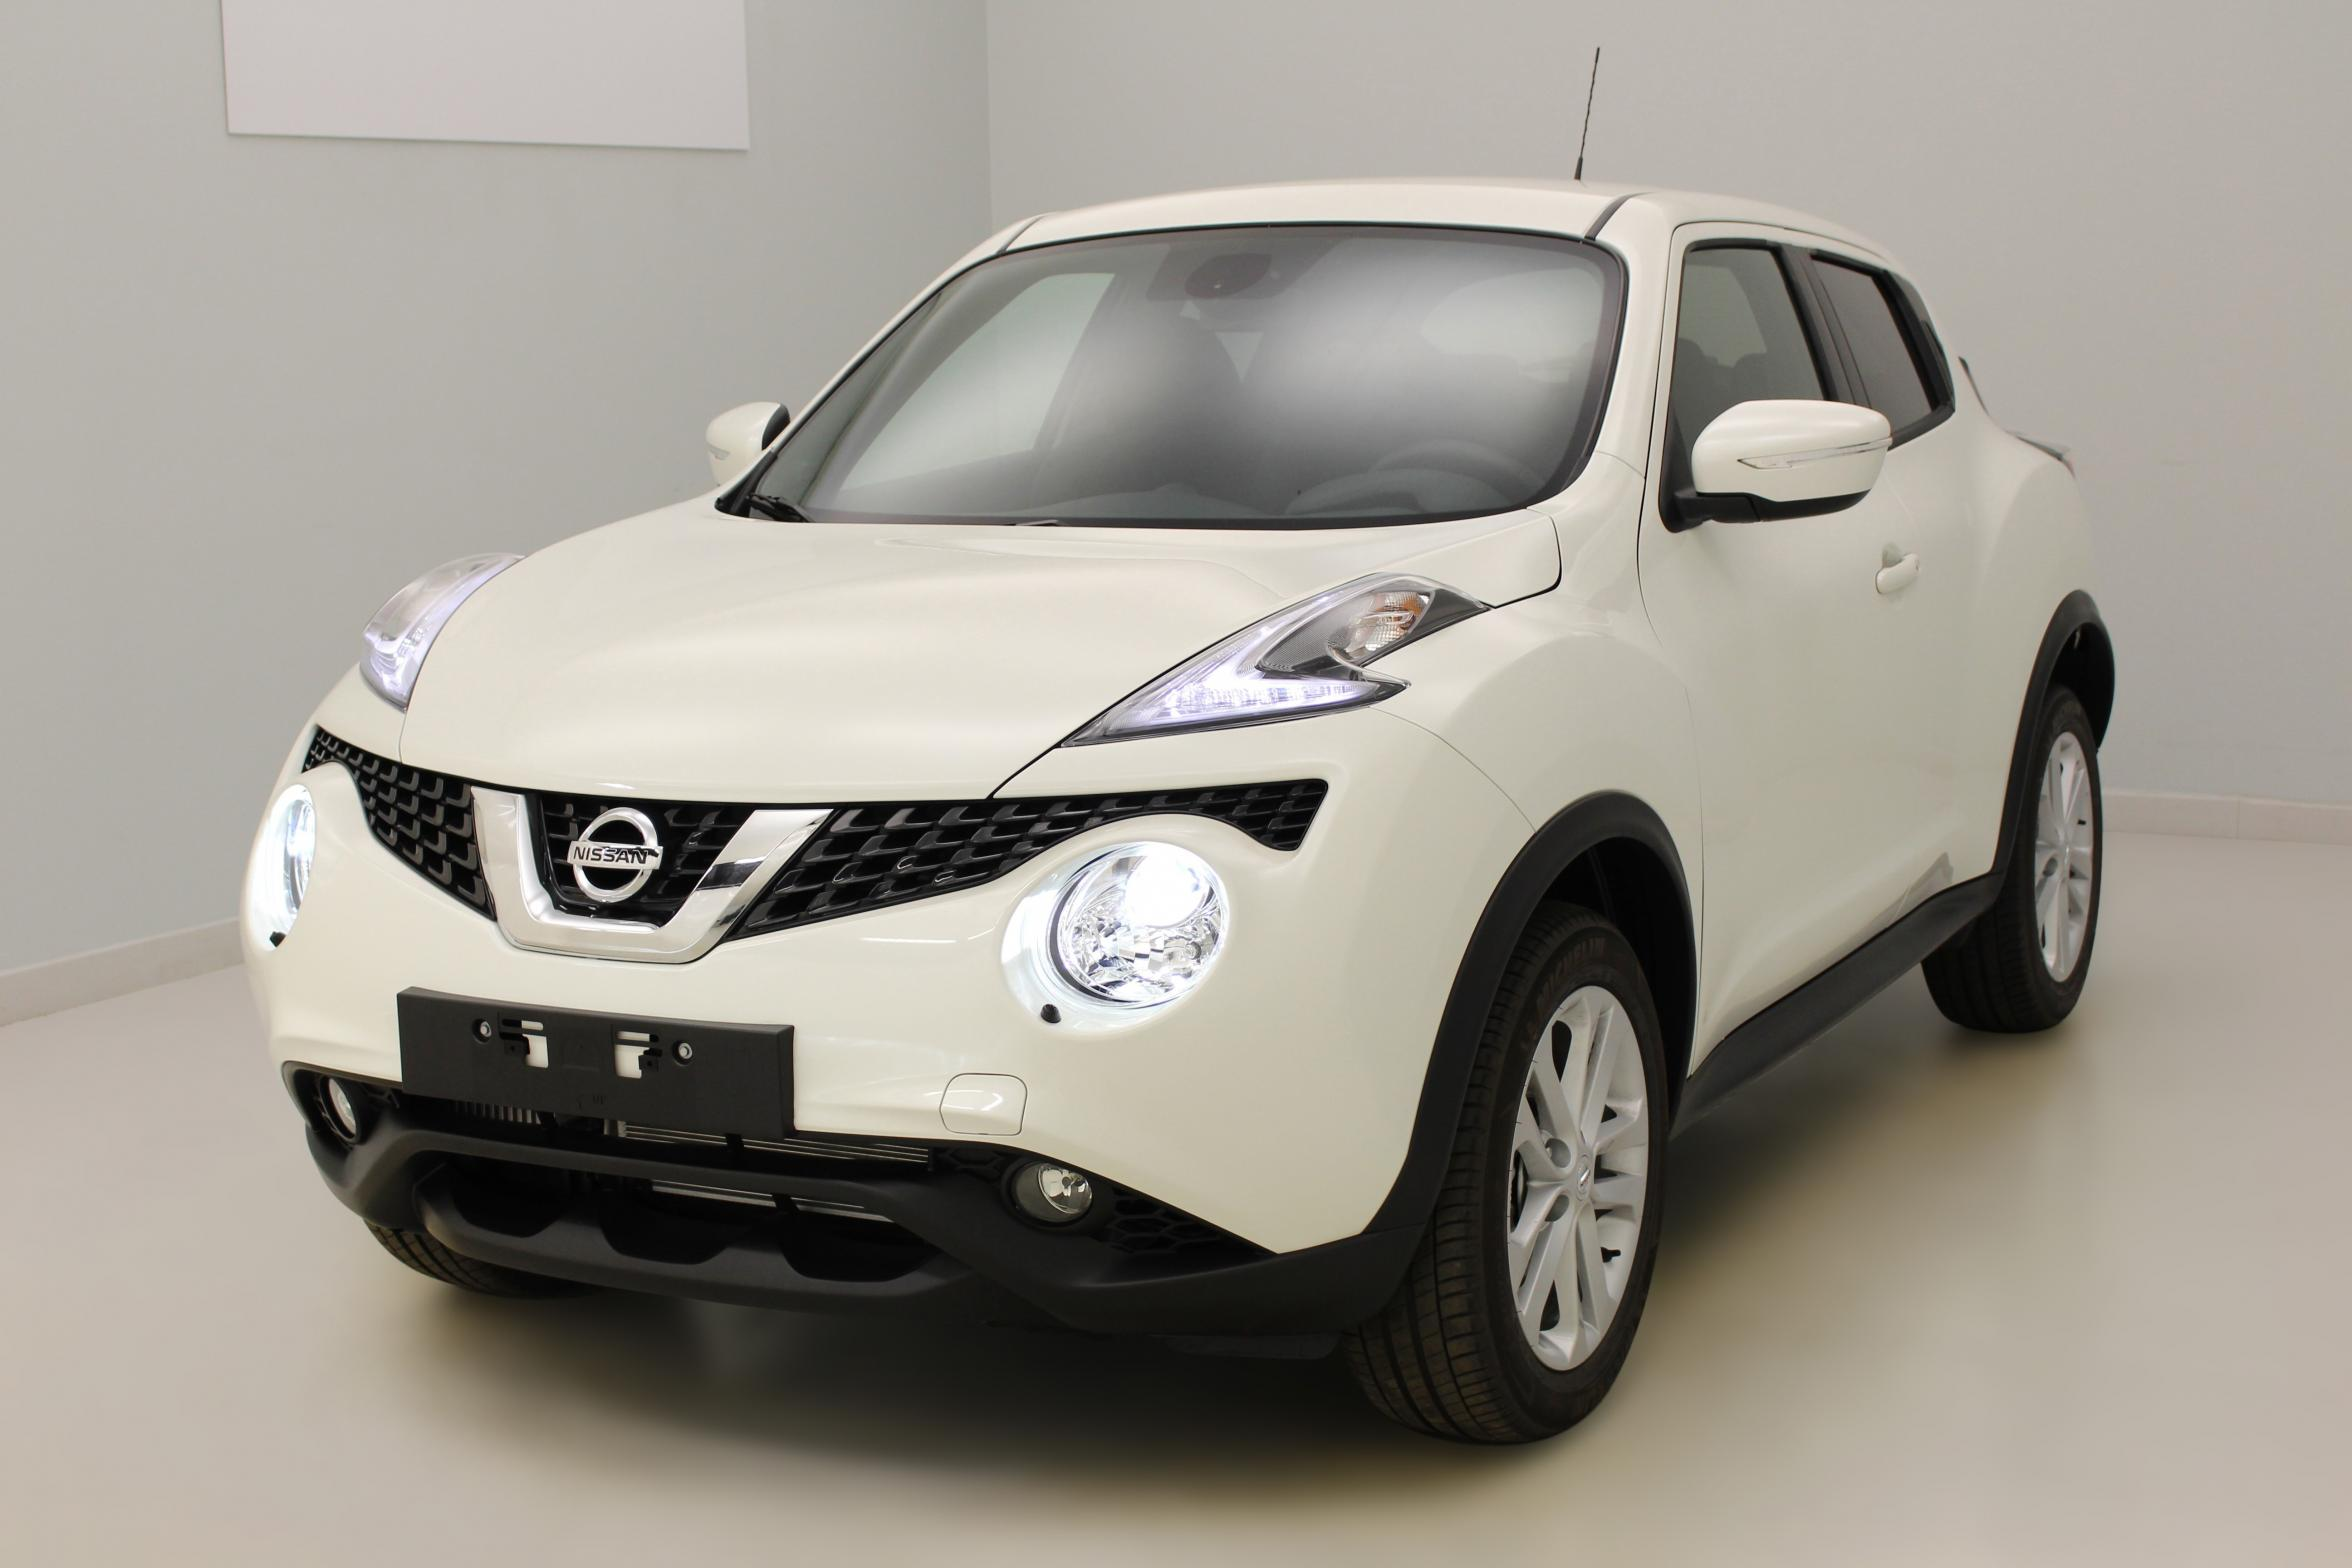 nissan juke 1 5 dci 110 fap start stop system n connecta blanc lunaire phares au x non avec. Black Bedroom Furniture Sets. Home Design Ideas